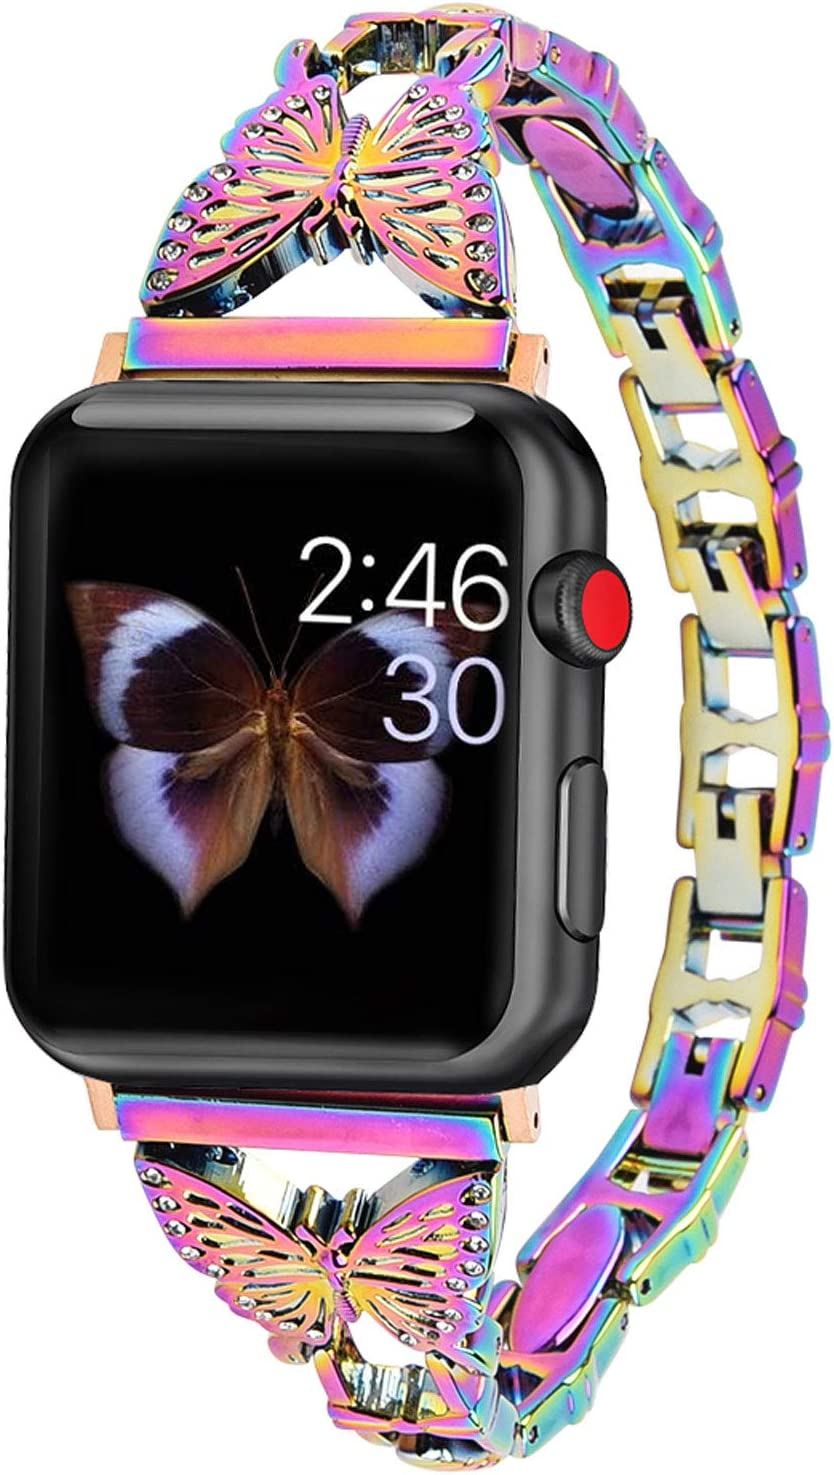 Hi-Yoohere Elegent Stylish Bands Compatible with Apple Watch 42mm 44mm Chic Butterfly Diamond Rhinestone Stainless Steel Metal Wristband Strap for iWatch SE & Series 6/5/4/3/2/1 (Colorful)